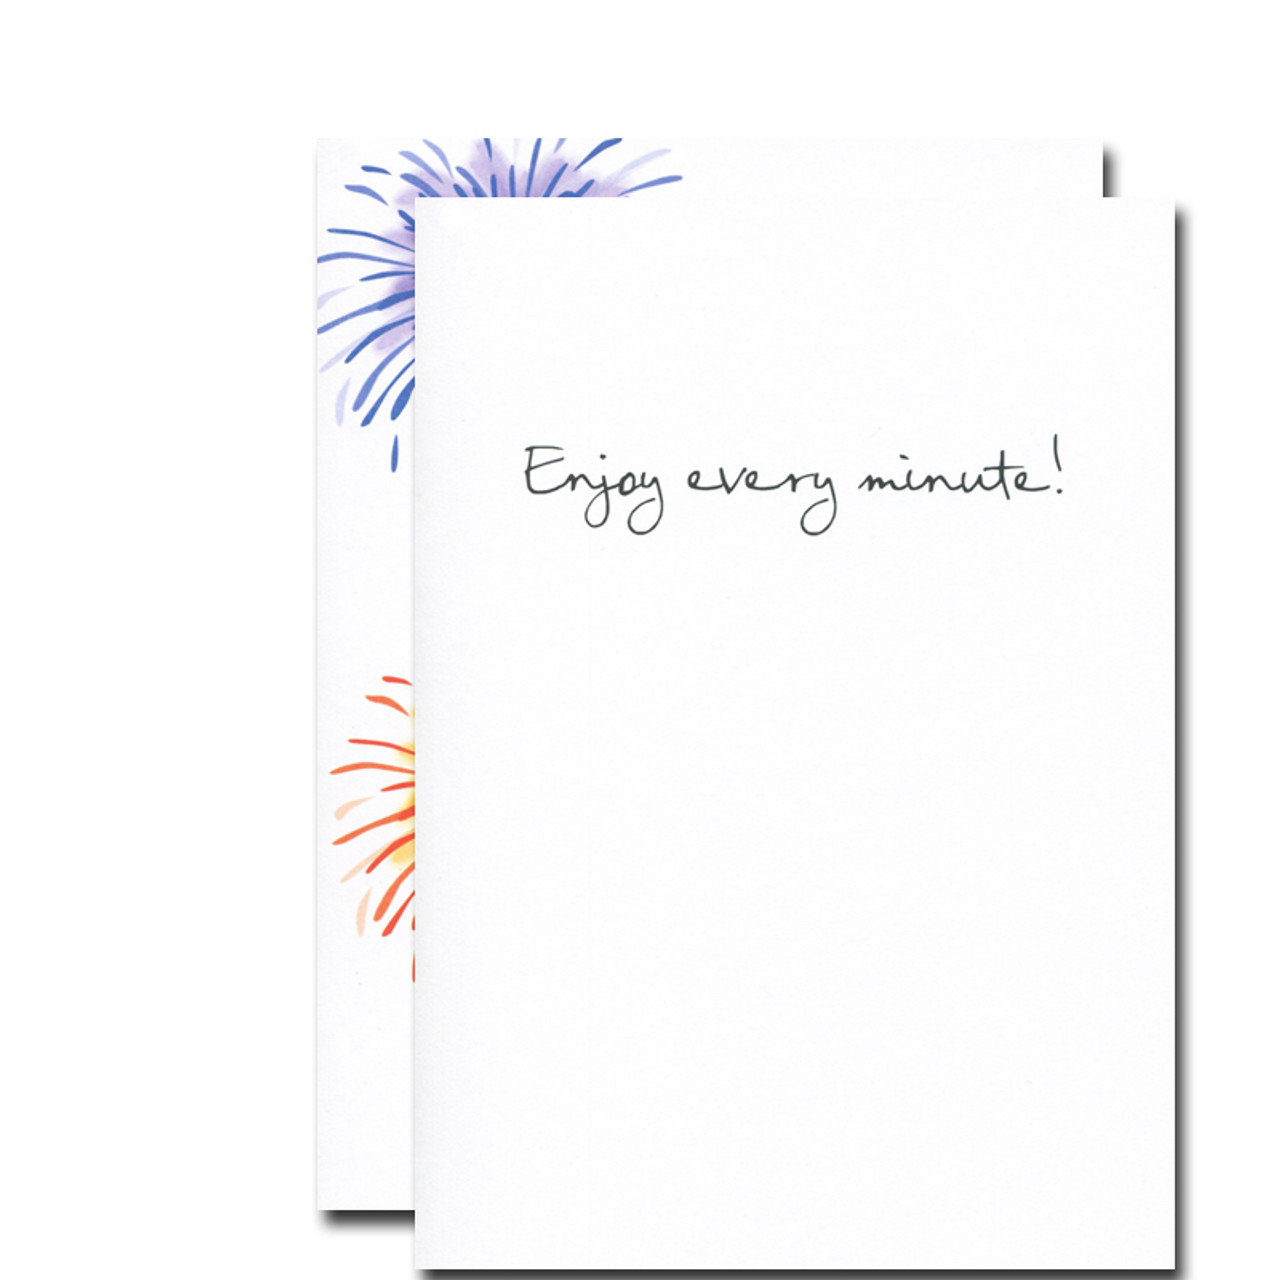 Boxed Birthday Card -Fireworks inside reads: Enjoy every minute!